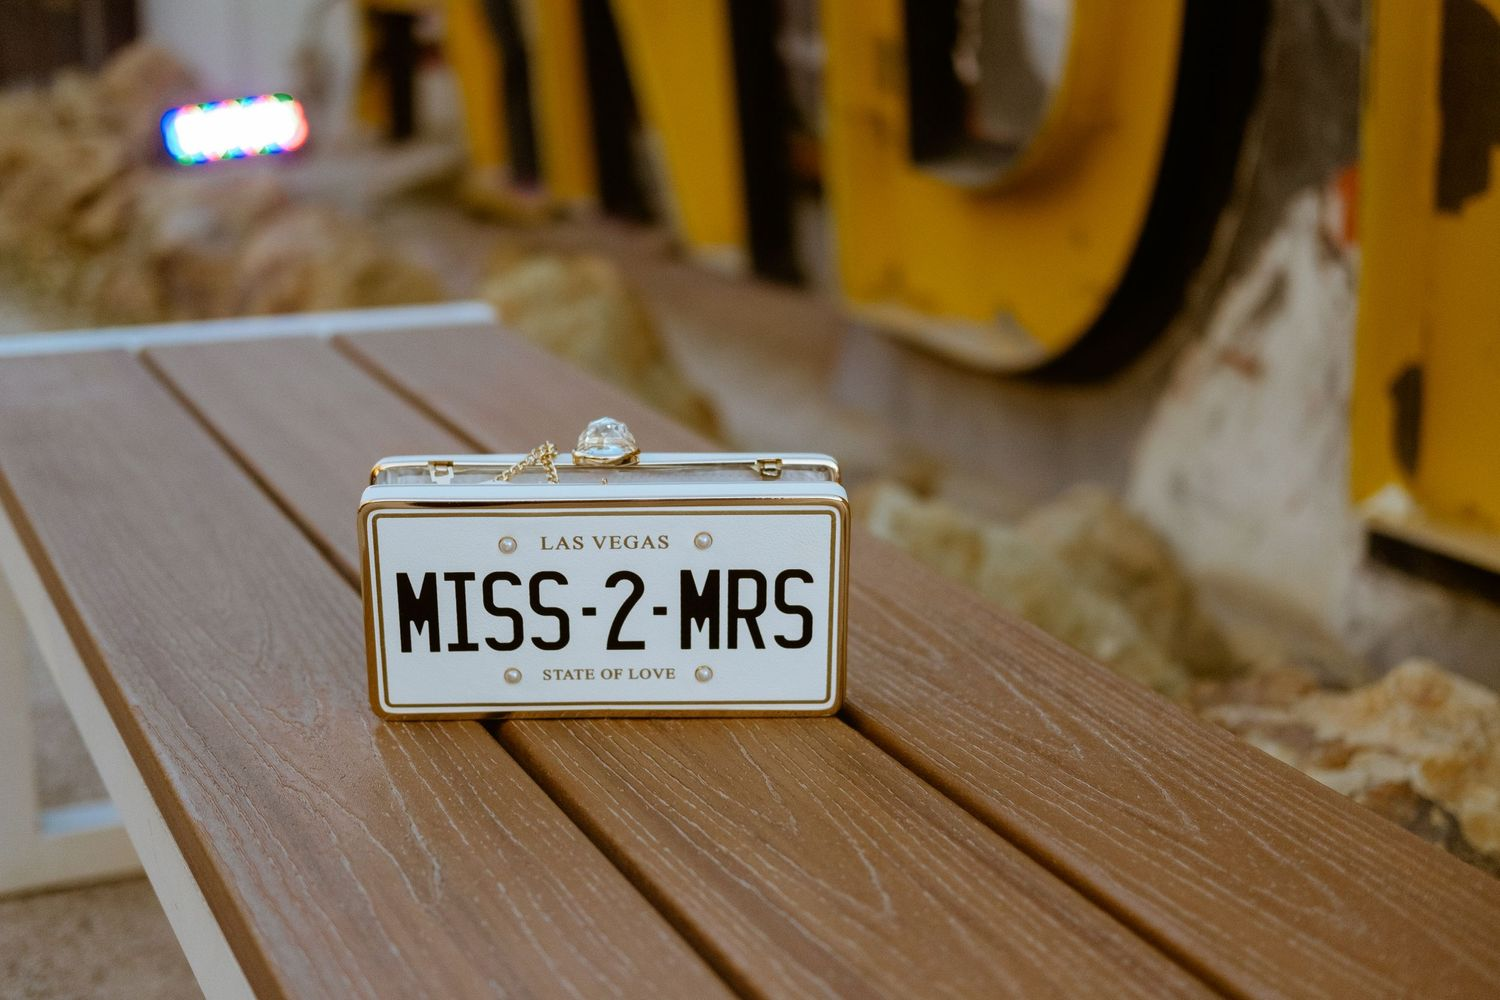 Miss 2 Mrs detail shots - Neon Museum